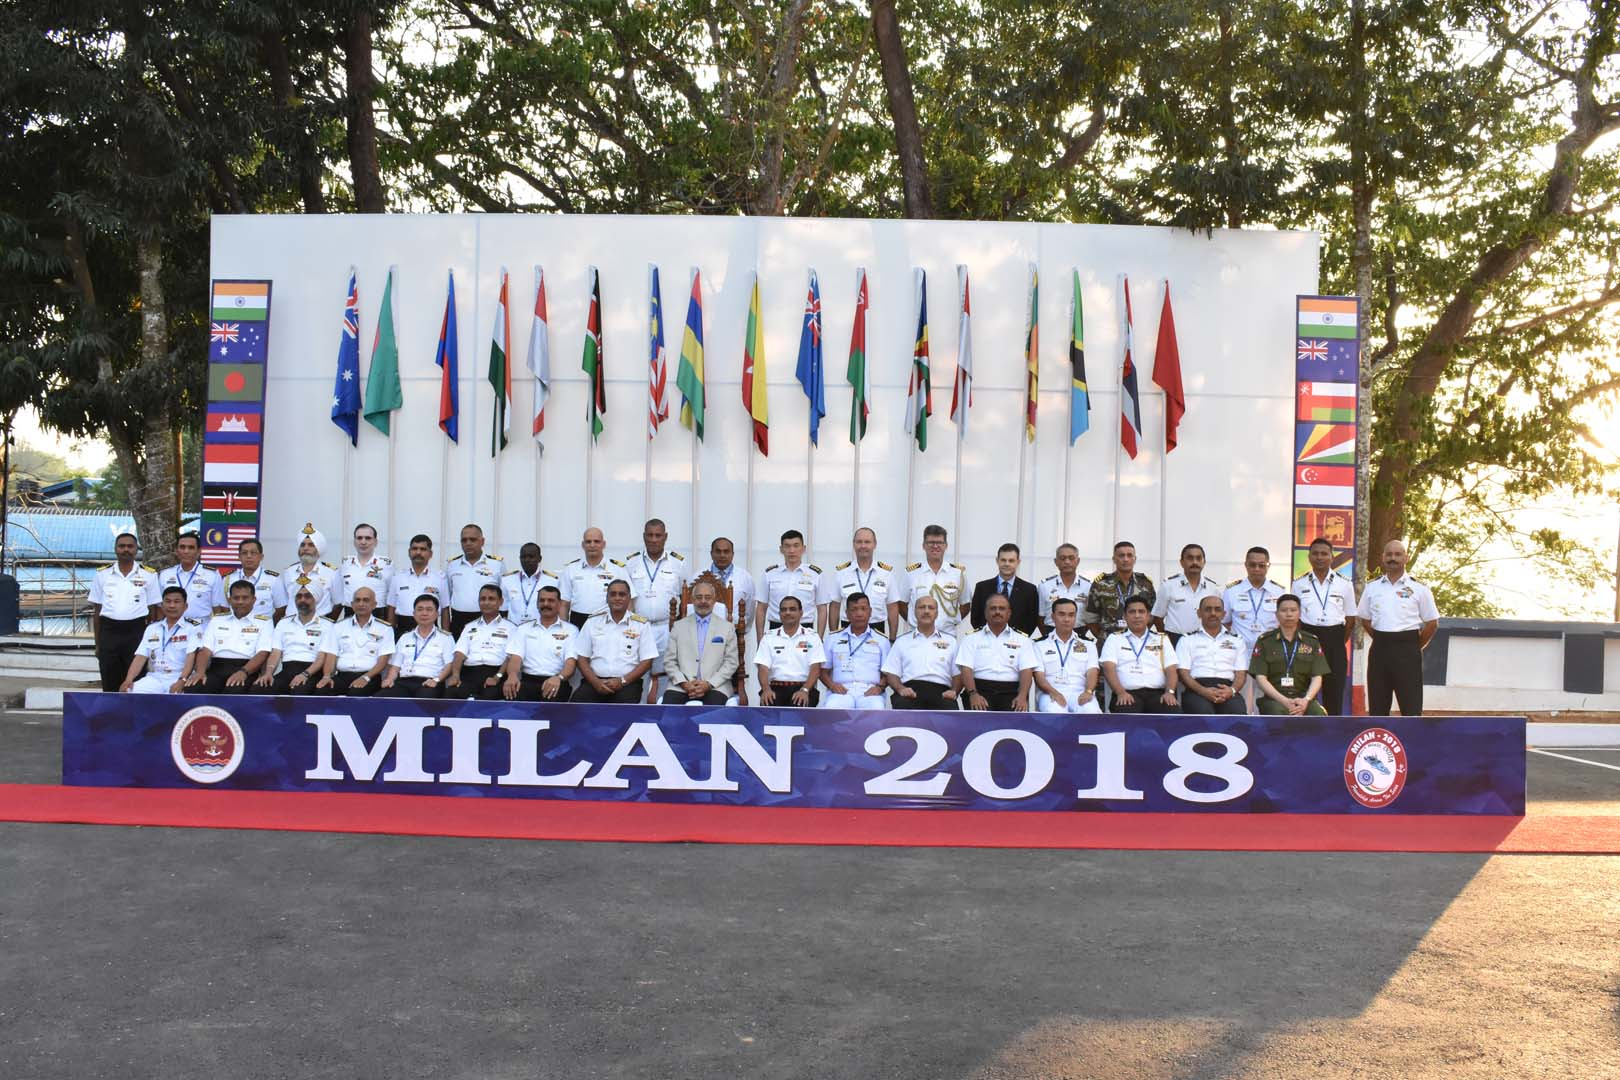 MILAN 2018: Fostering Cooperation through Naval Exercise in the Indian Ocean Region